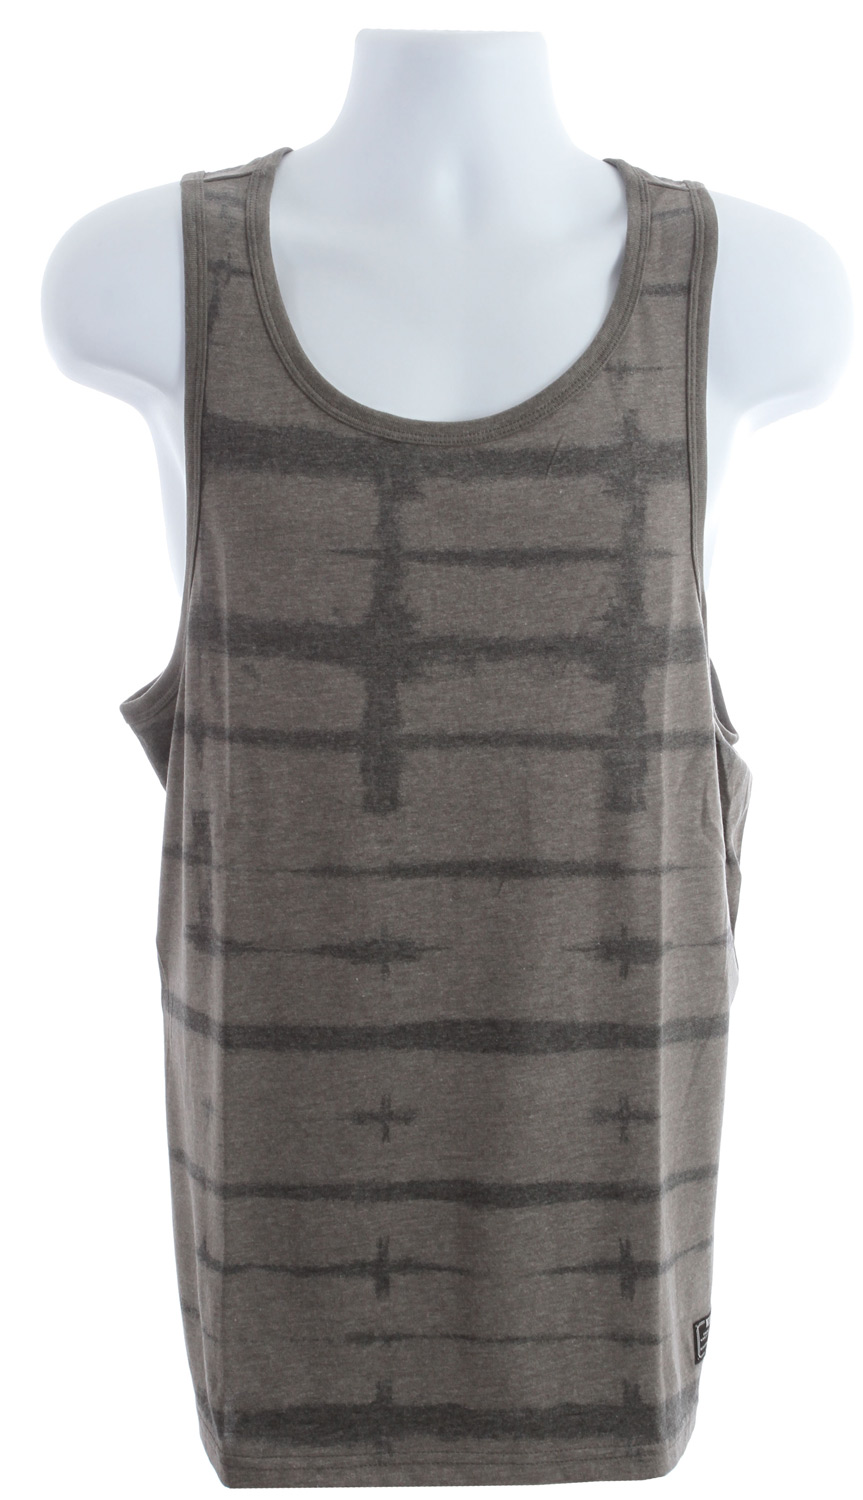 Skateboard Nike Shibori Dri Fit Tank Midnight Fog/Black - $25.95